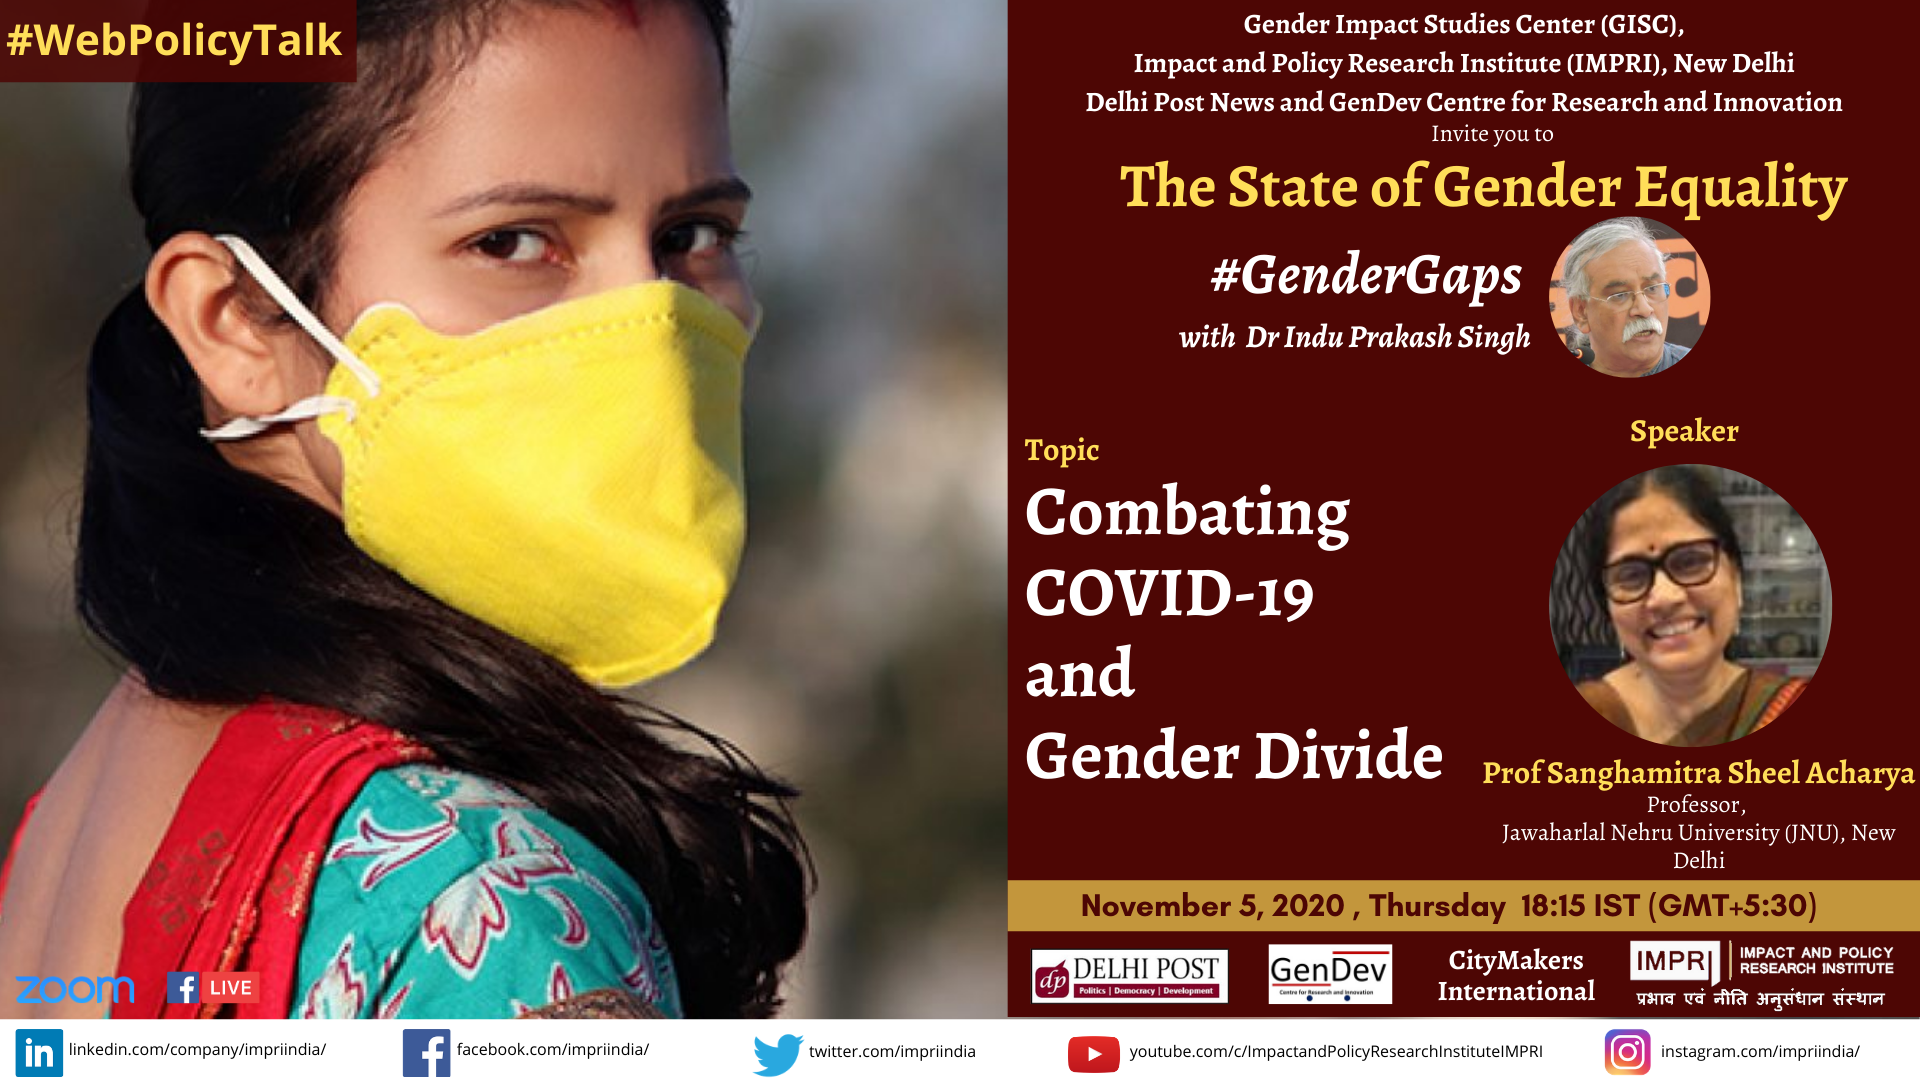 Combating COVID 19 and Gender Divide